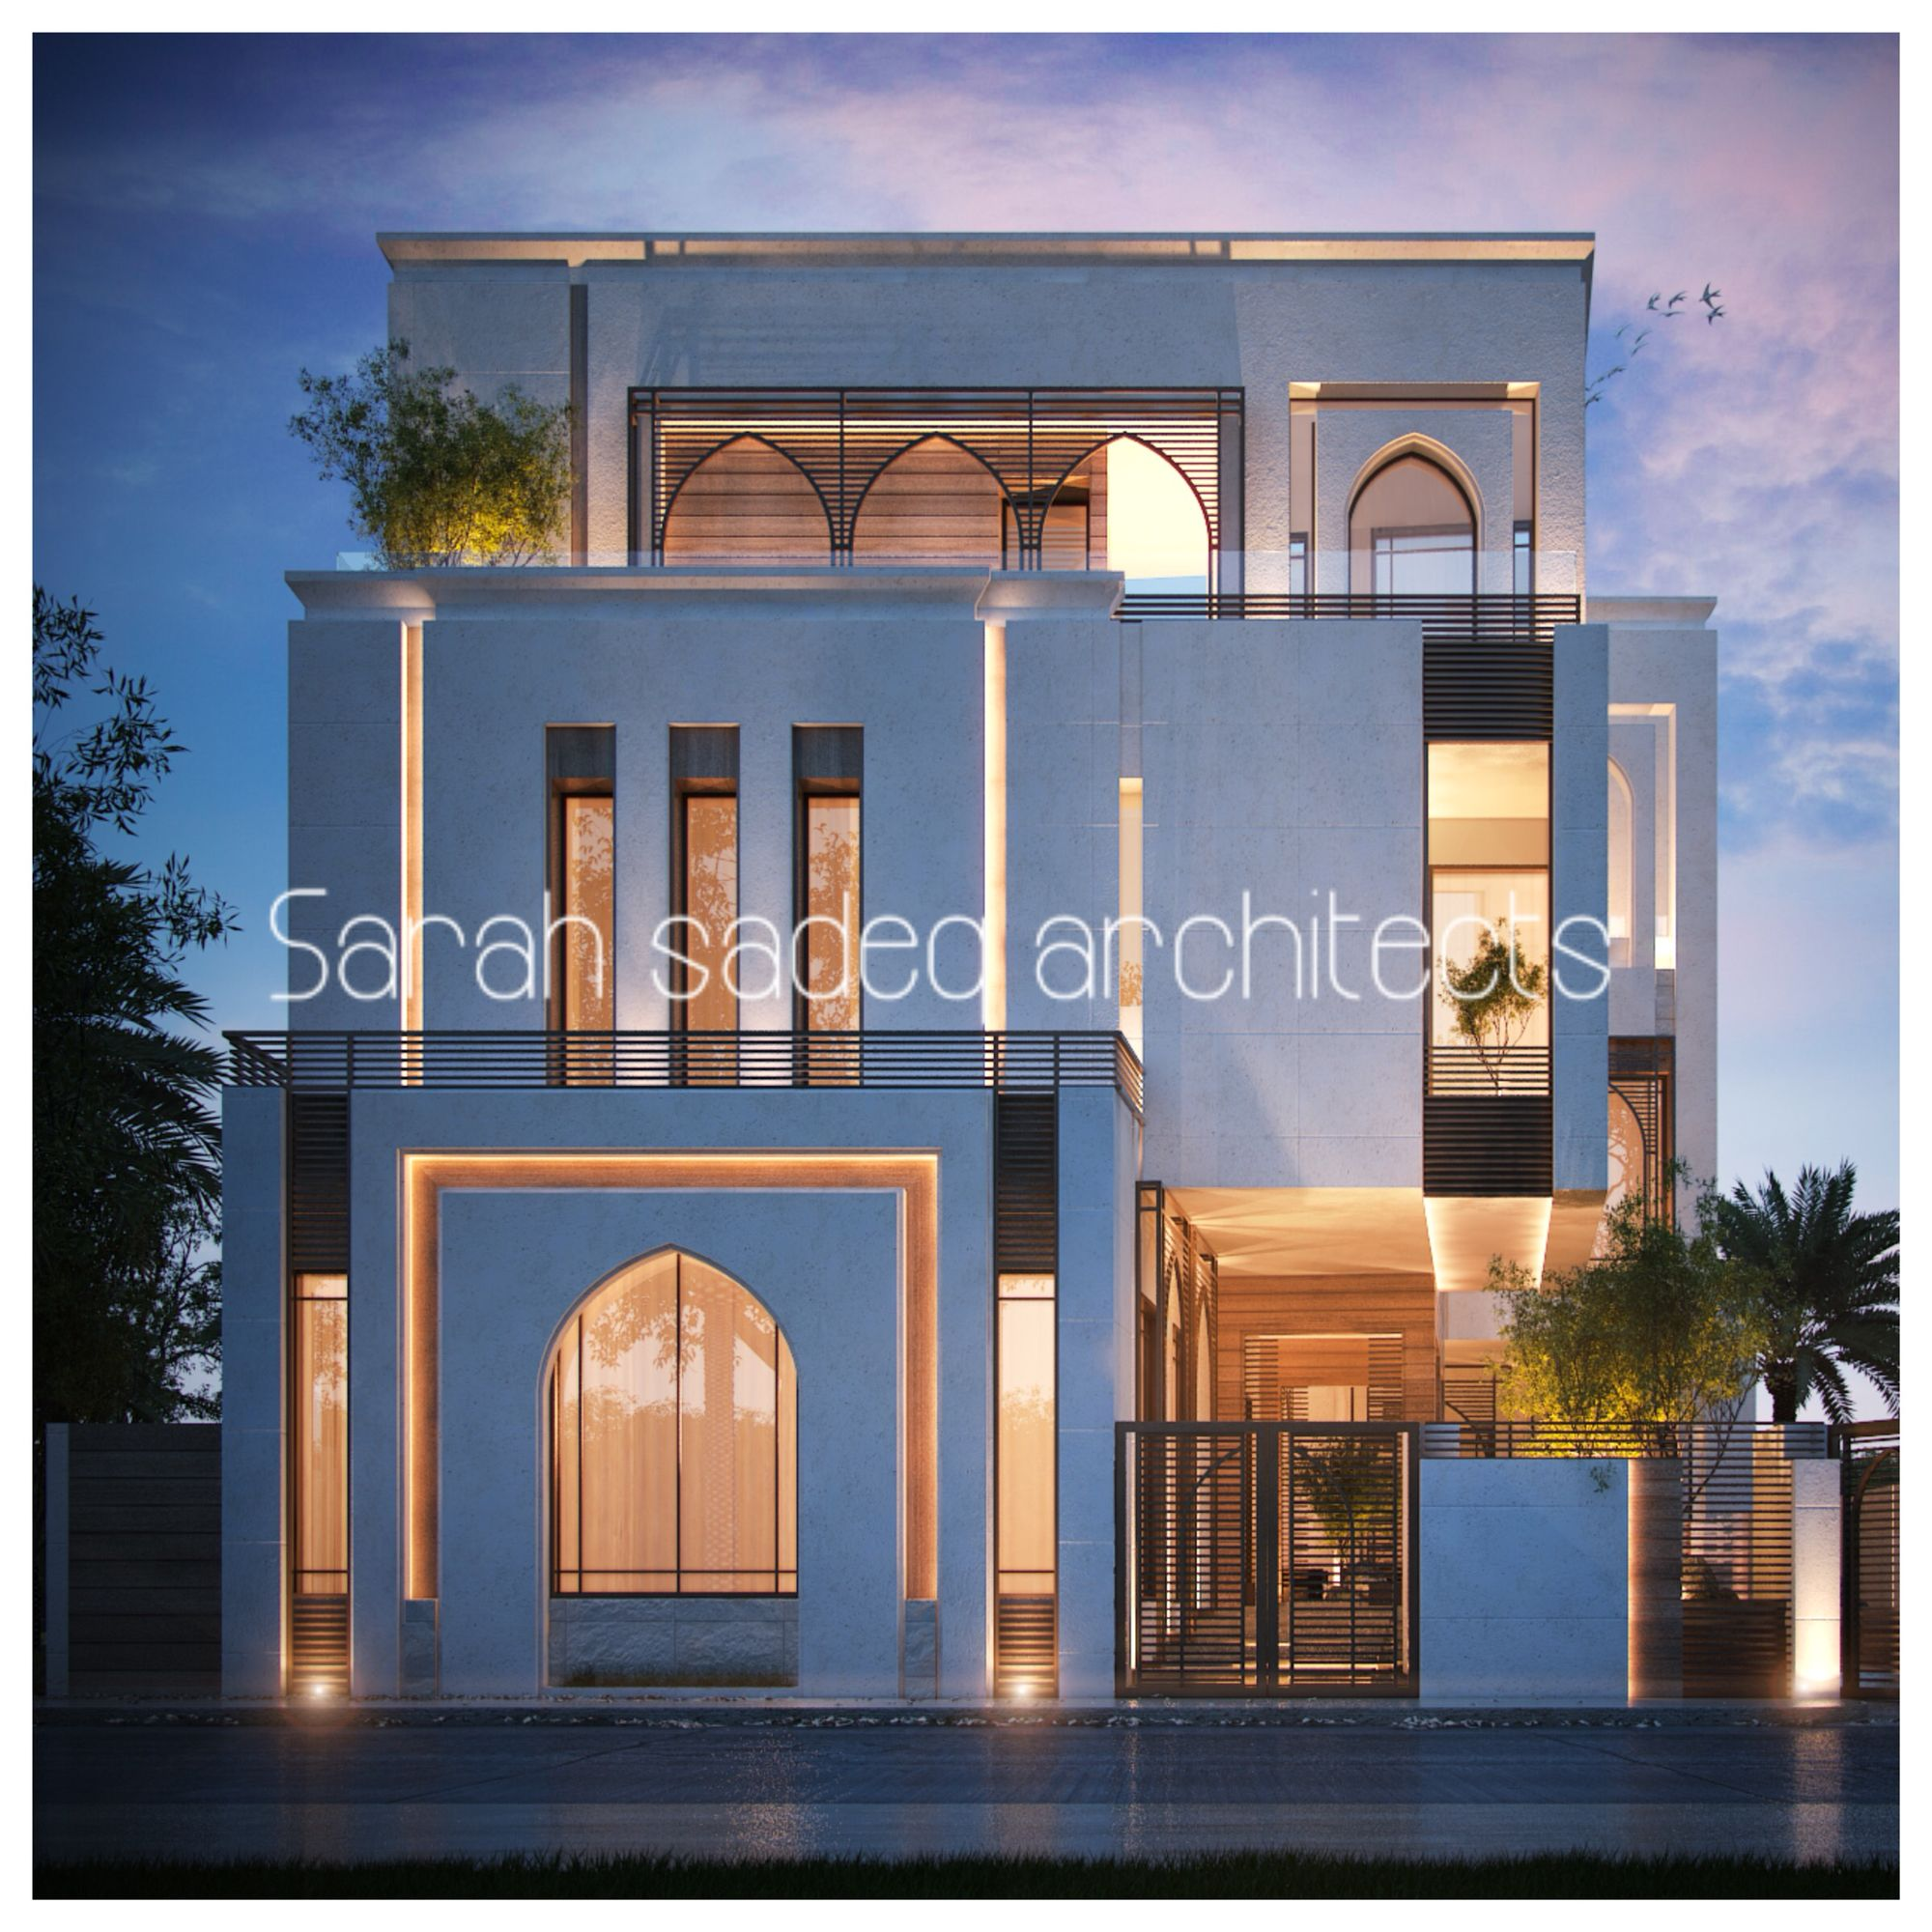 Pin By Mohamed O On Modern Villas: 500 M , Private Villa , Kuwait Sarah Sadeq Architects